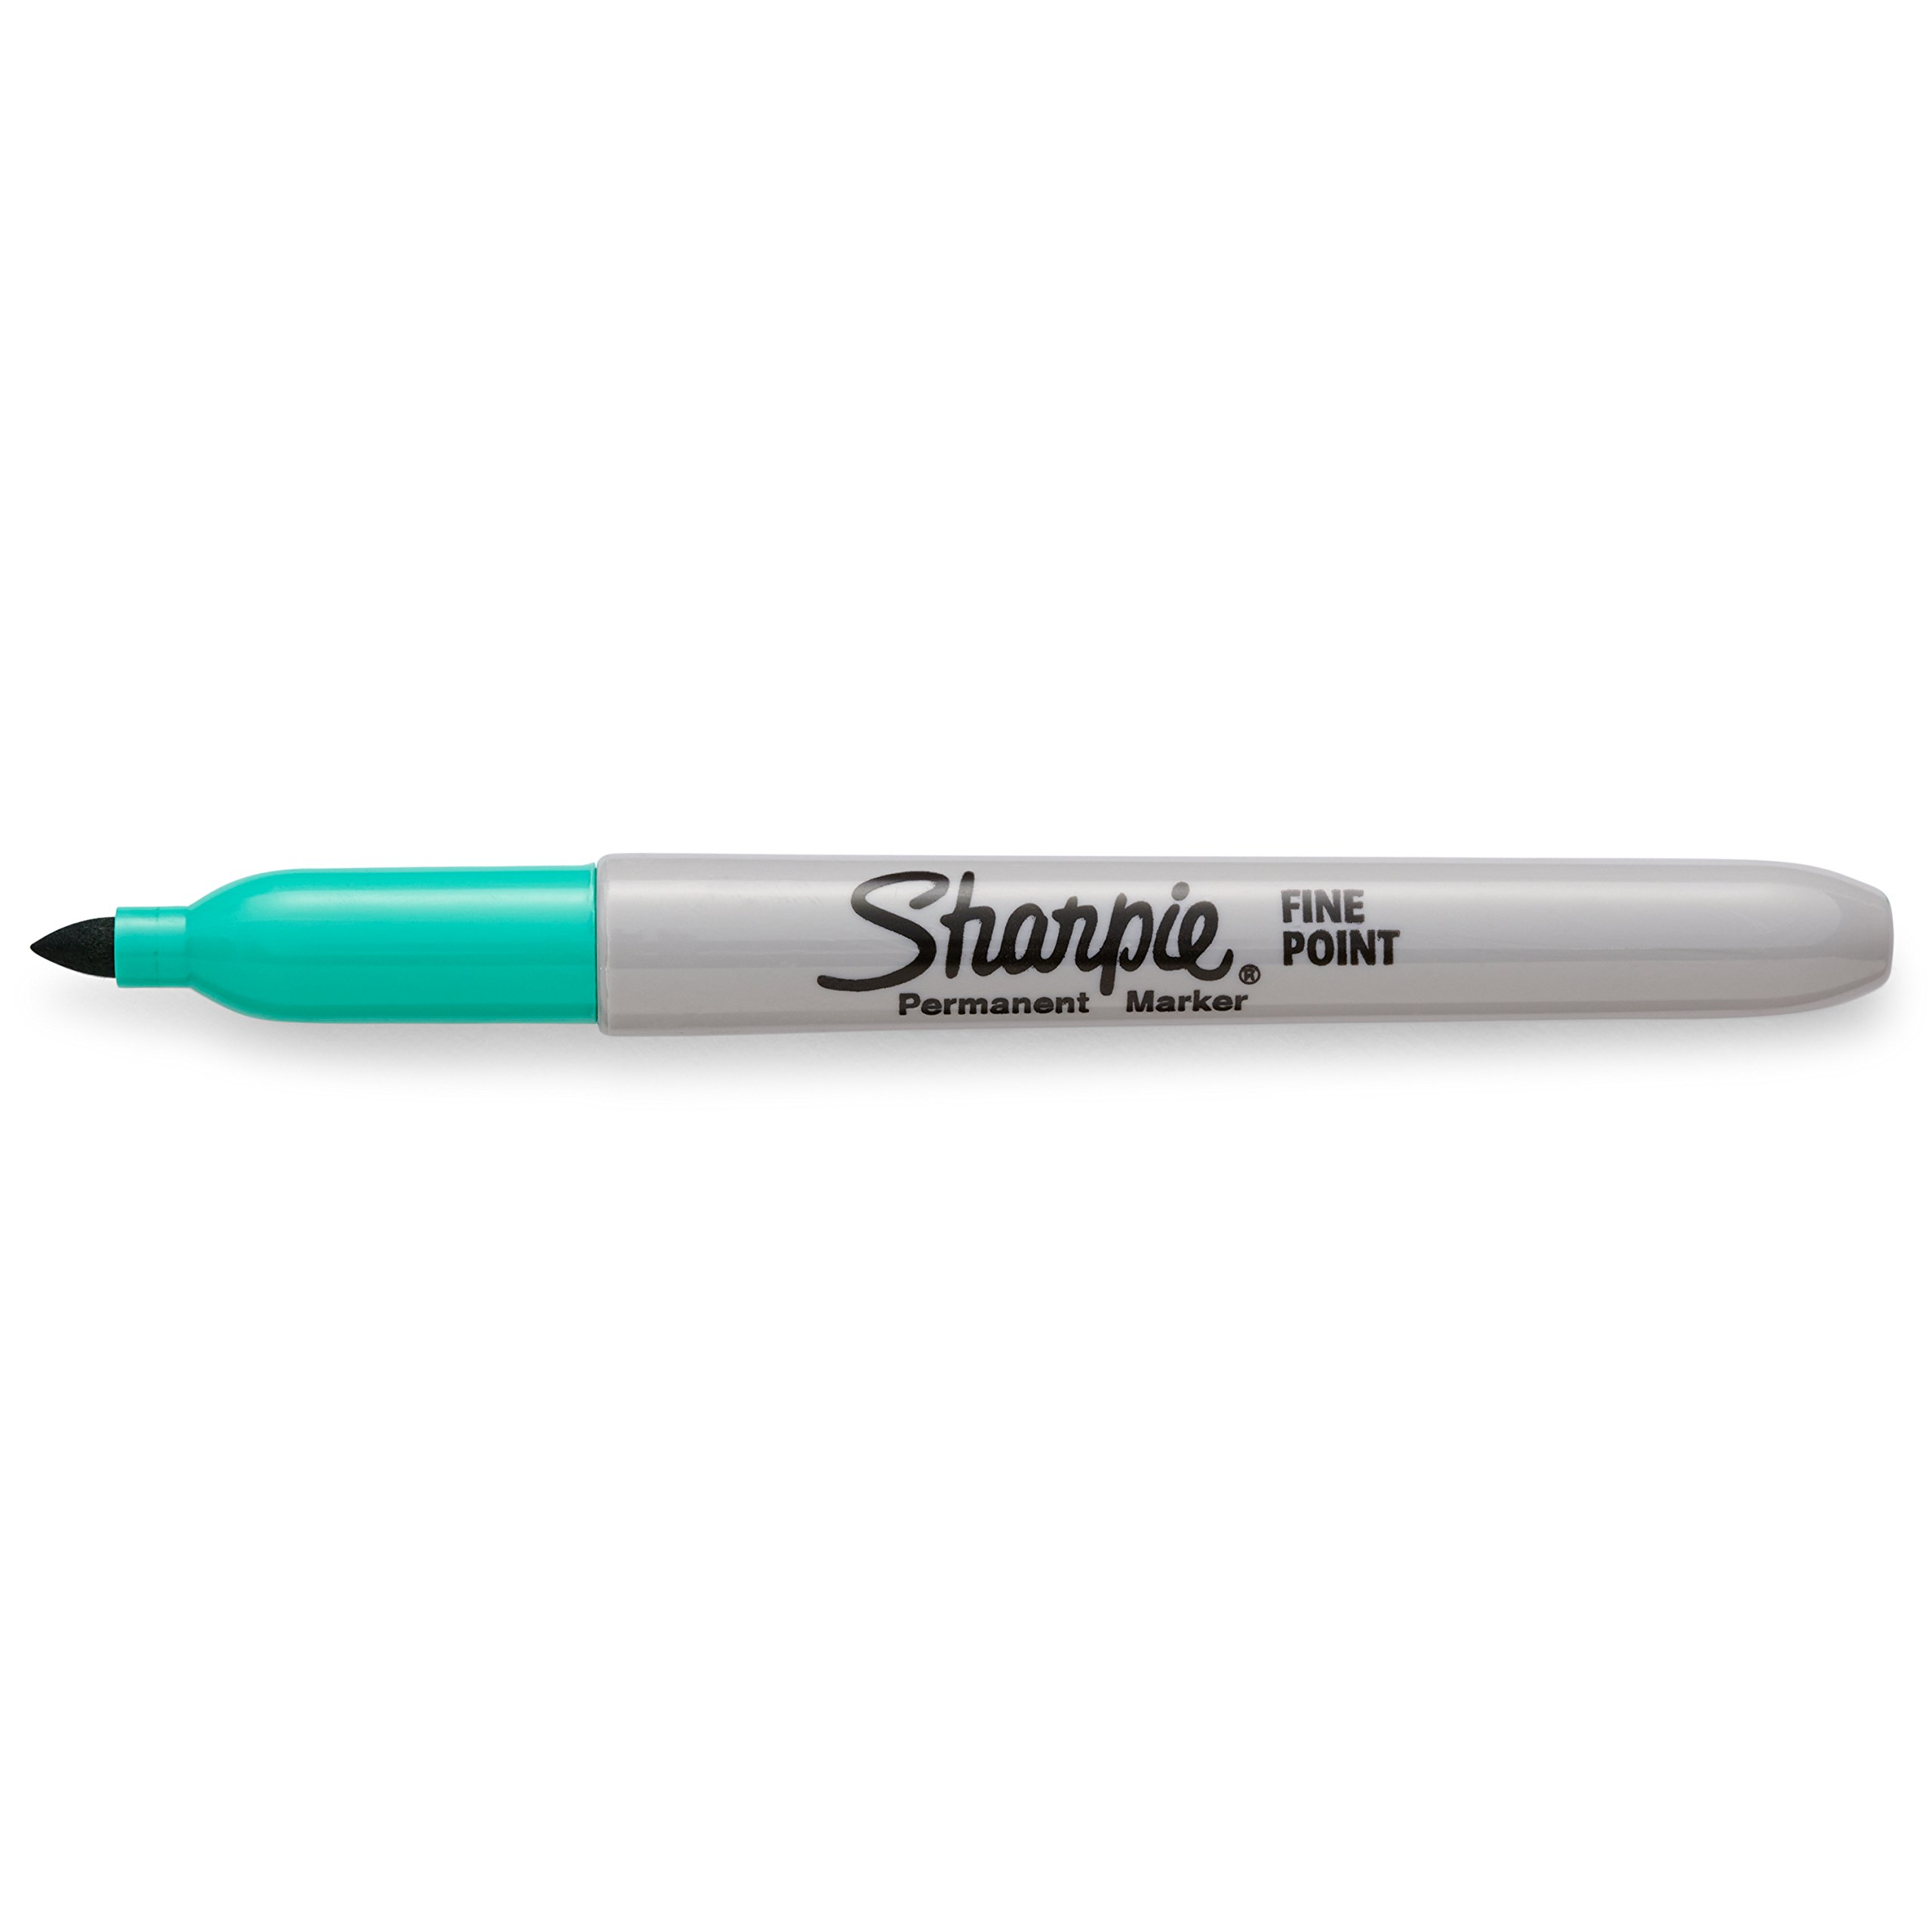 Sharpie Color Burst Permanent Markers, Fine Point, Assorted Colors, 24 Count by Sharpie (Image #21)